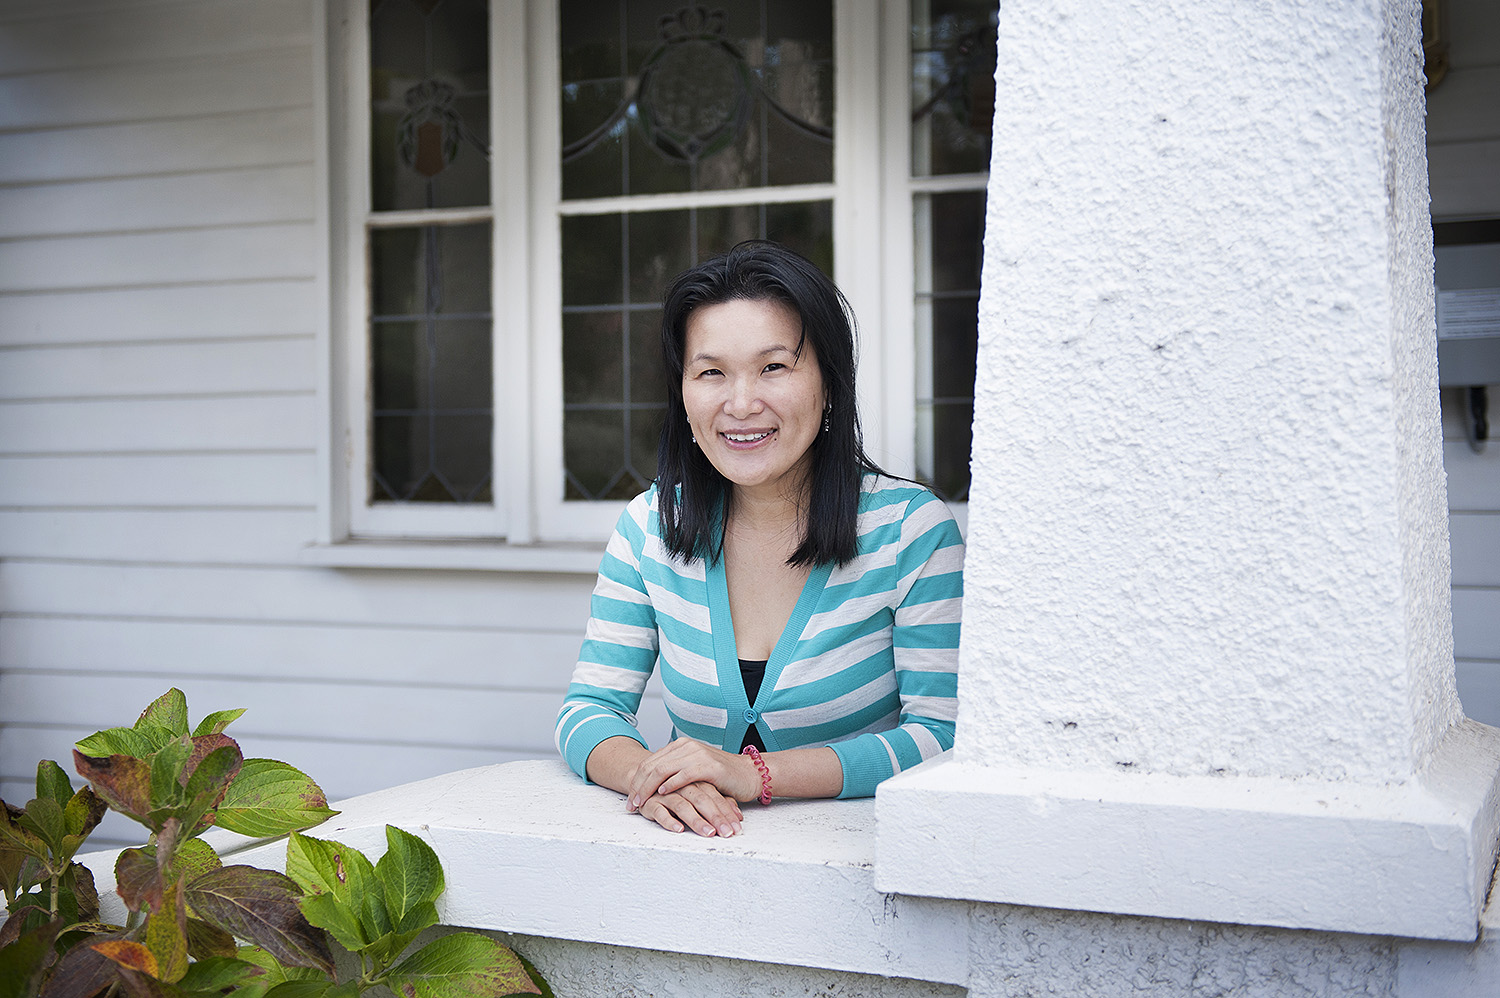 Property Investor tina koh on the porch of her bayside home